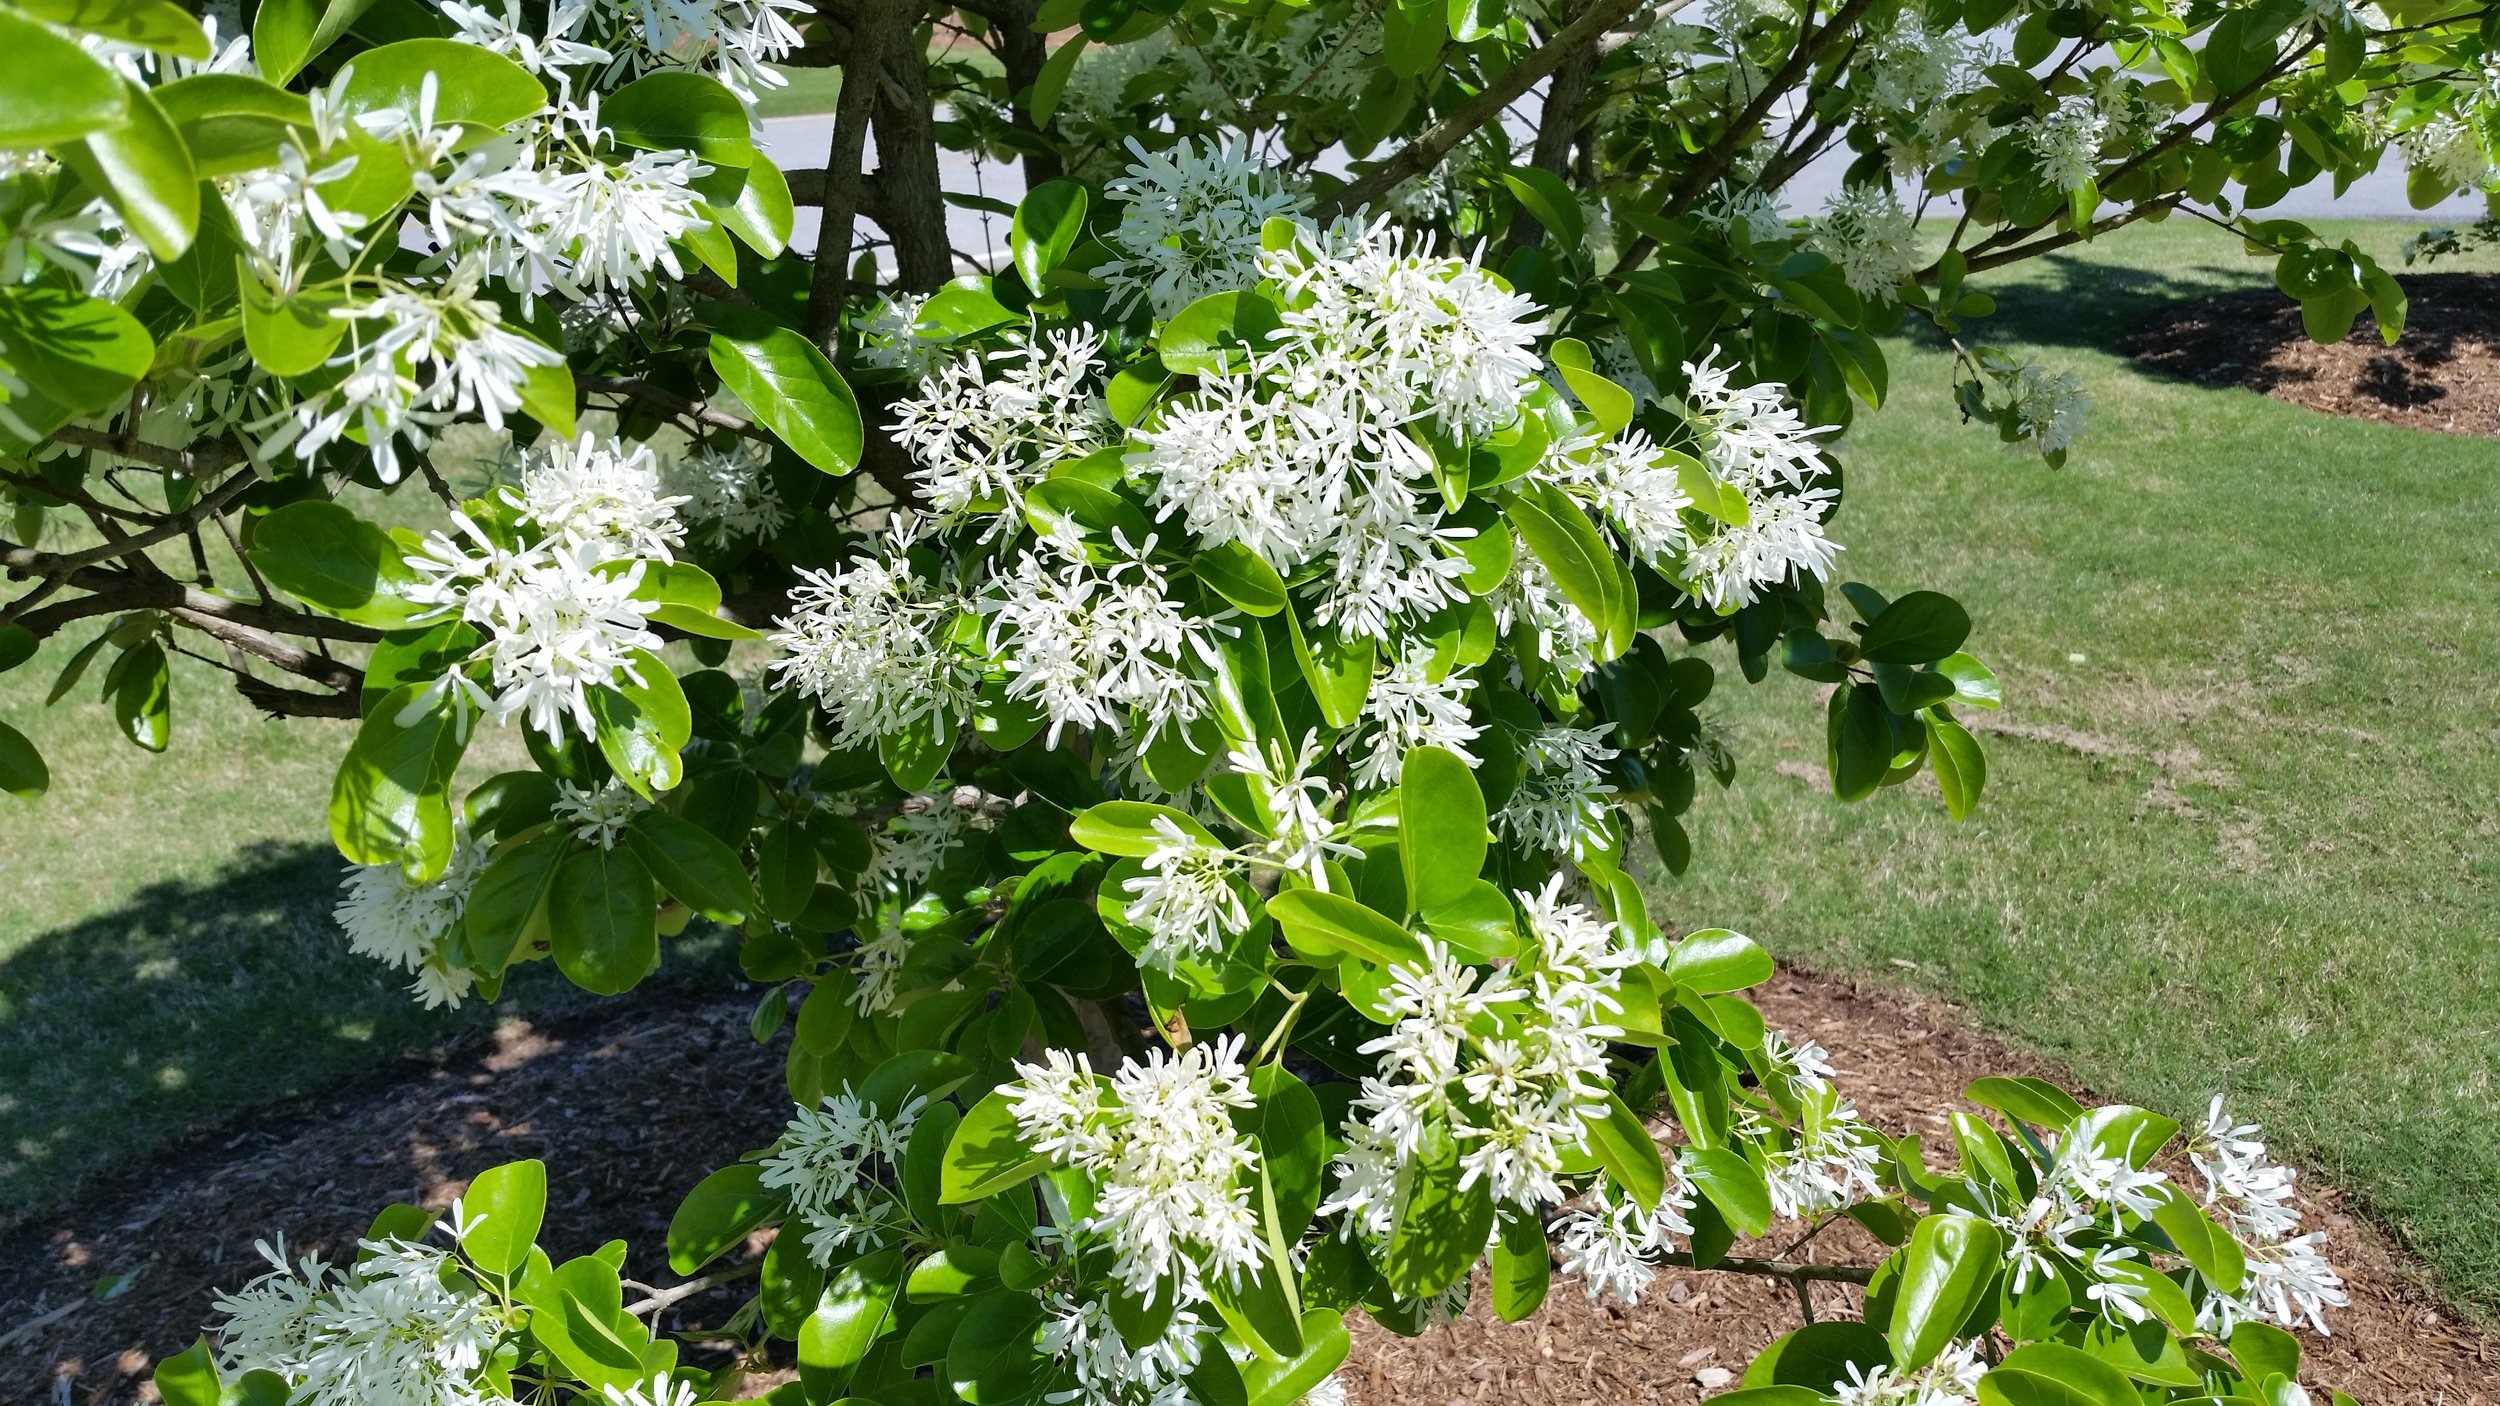 Chionanthus retusus  bloom